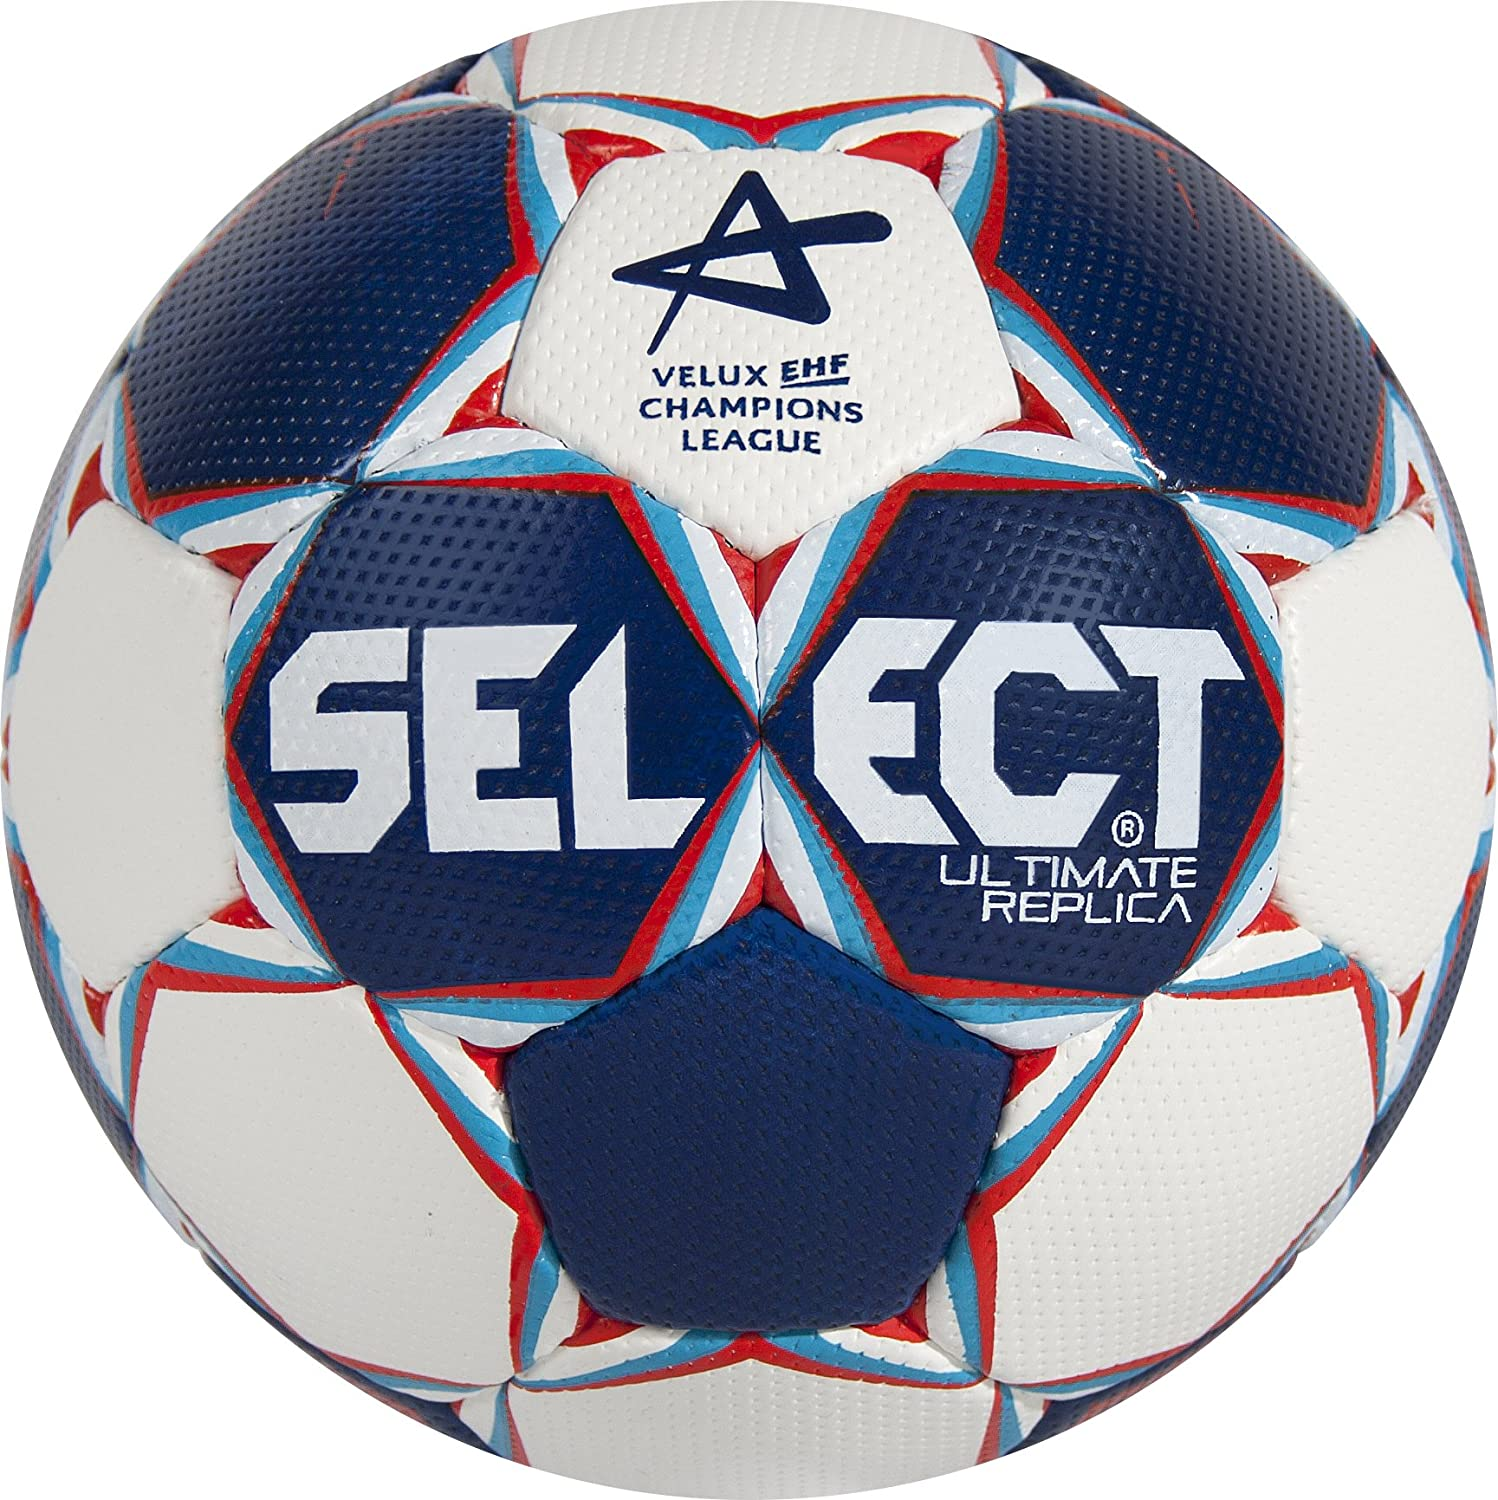 Balón de balonmano select ultimate Replica CL, Unisex adulto